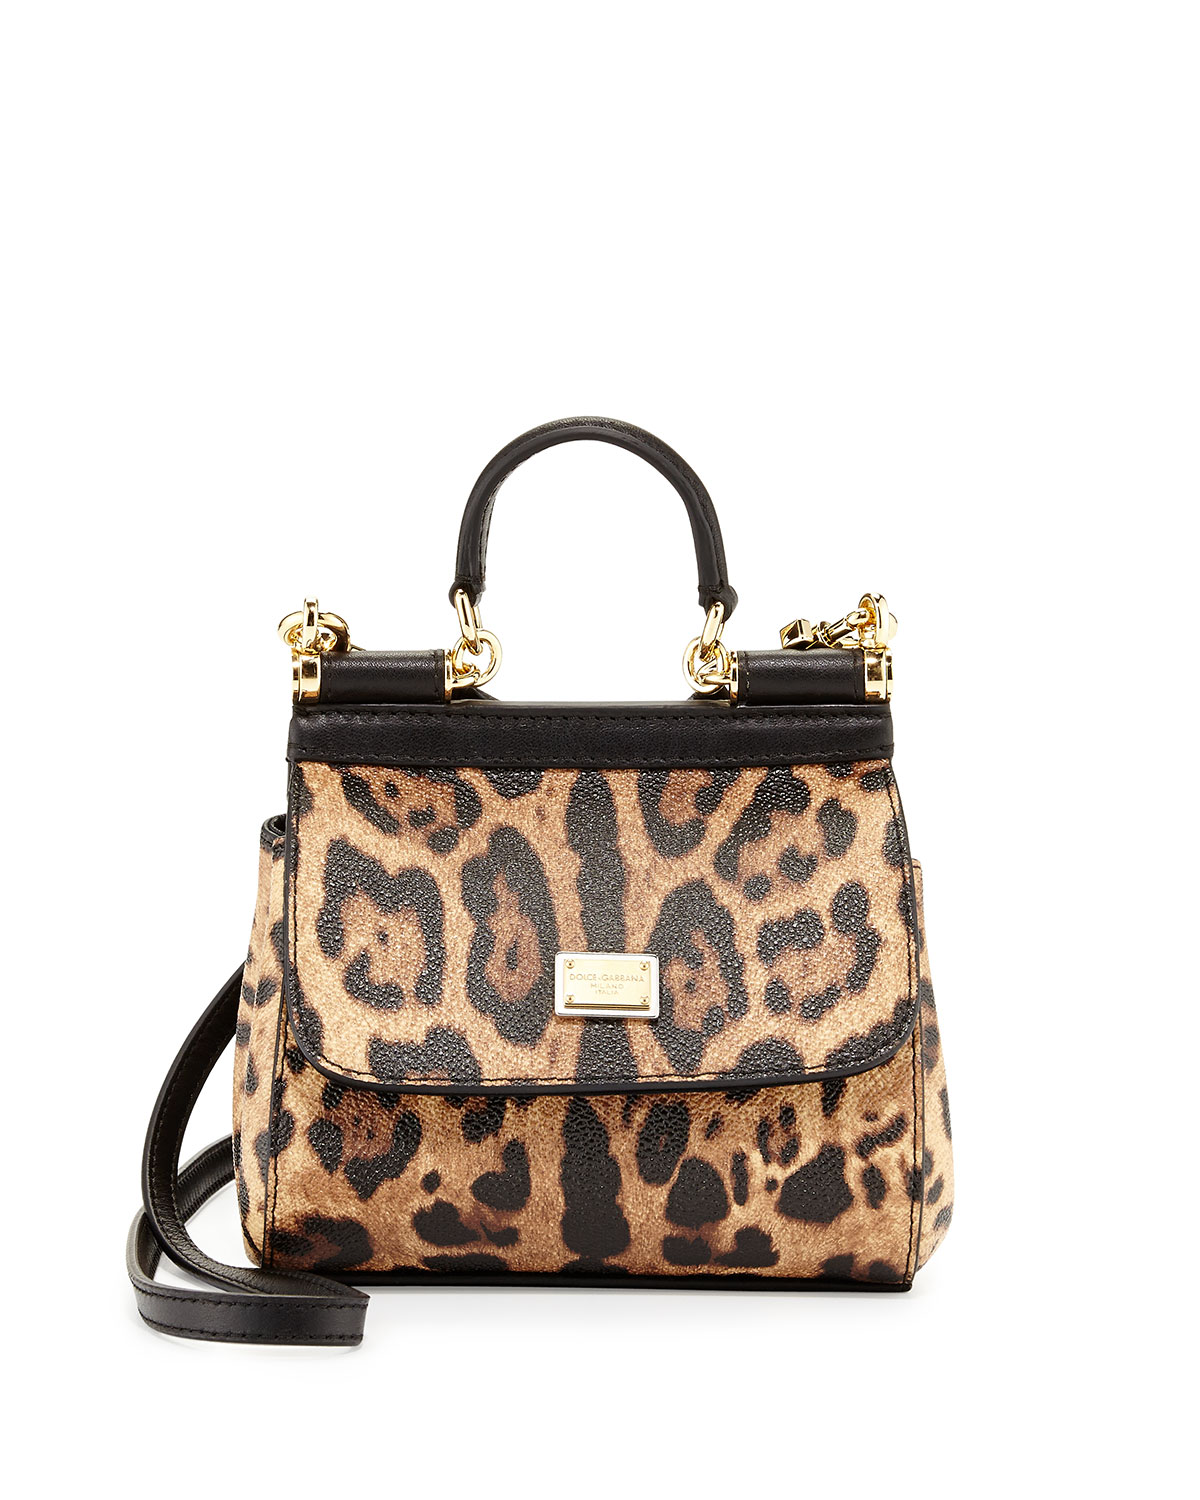 Miss Sicily Mini Leopard Print Crossbody Bag Black